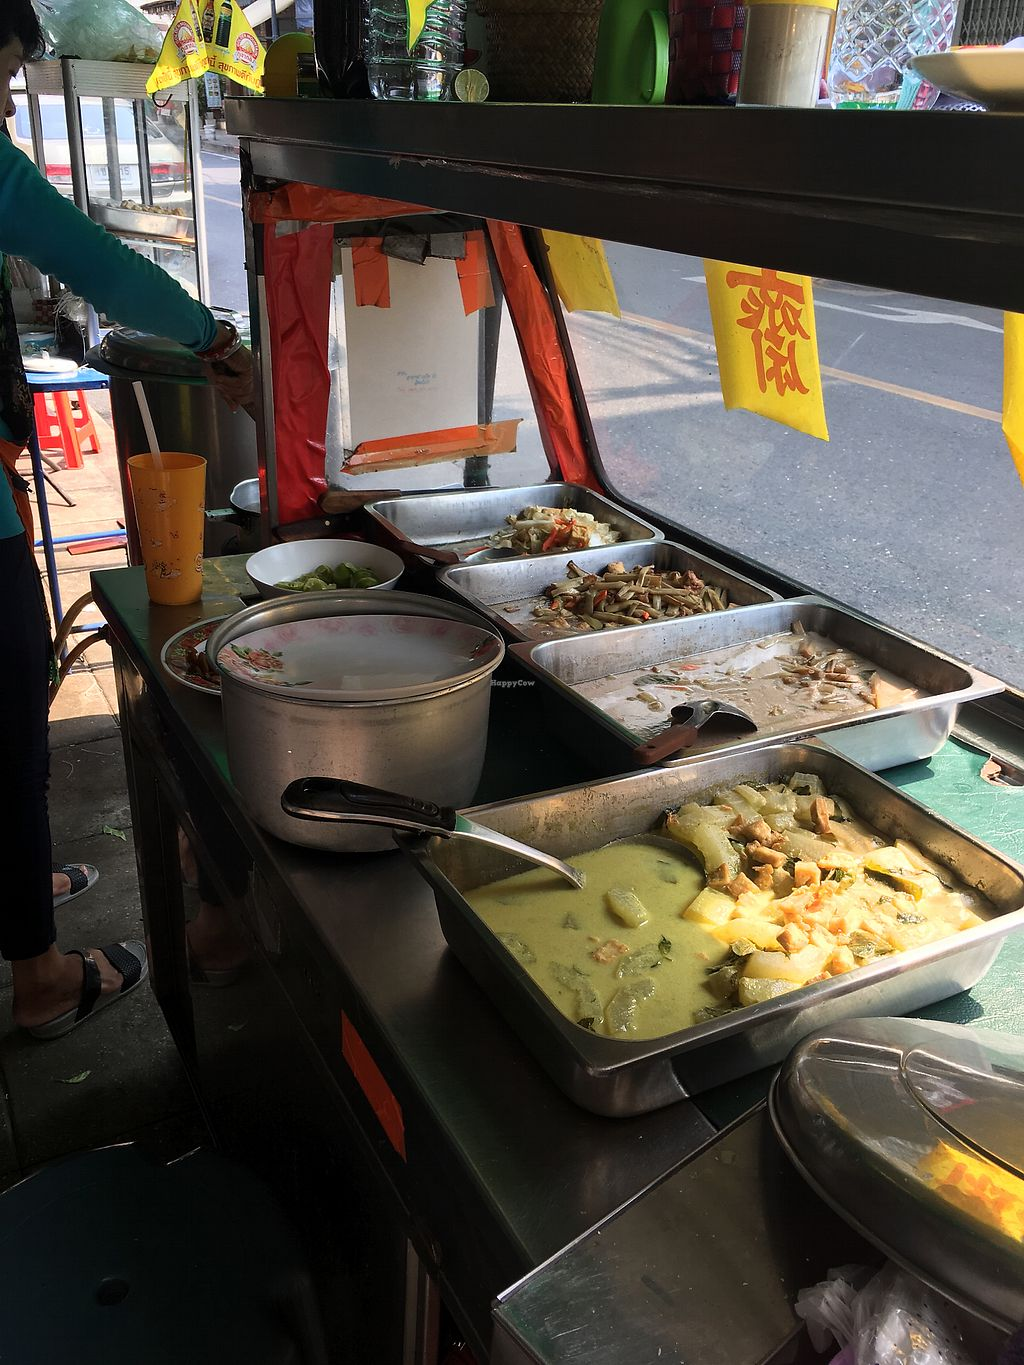 """Photo of Pan Road - Vegan Food Cart  by <a href=""""/members/profile/anneclara"""">anneclara</a> <br/>Curry's  <br/> March 26, 2018  - <a href='/contact/abuse/image/88695/376249'>Report</a>"""